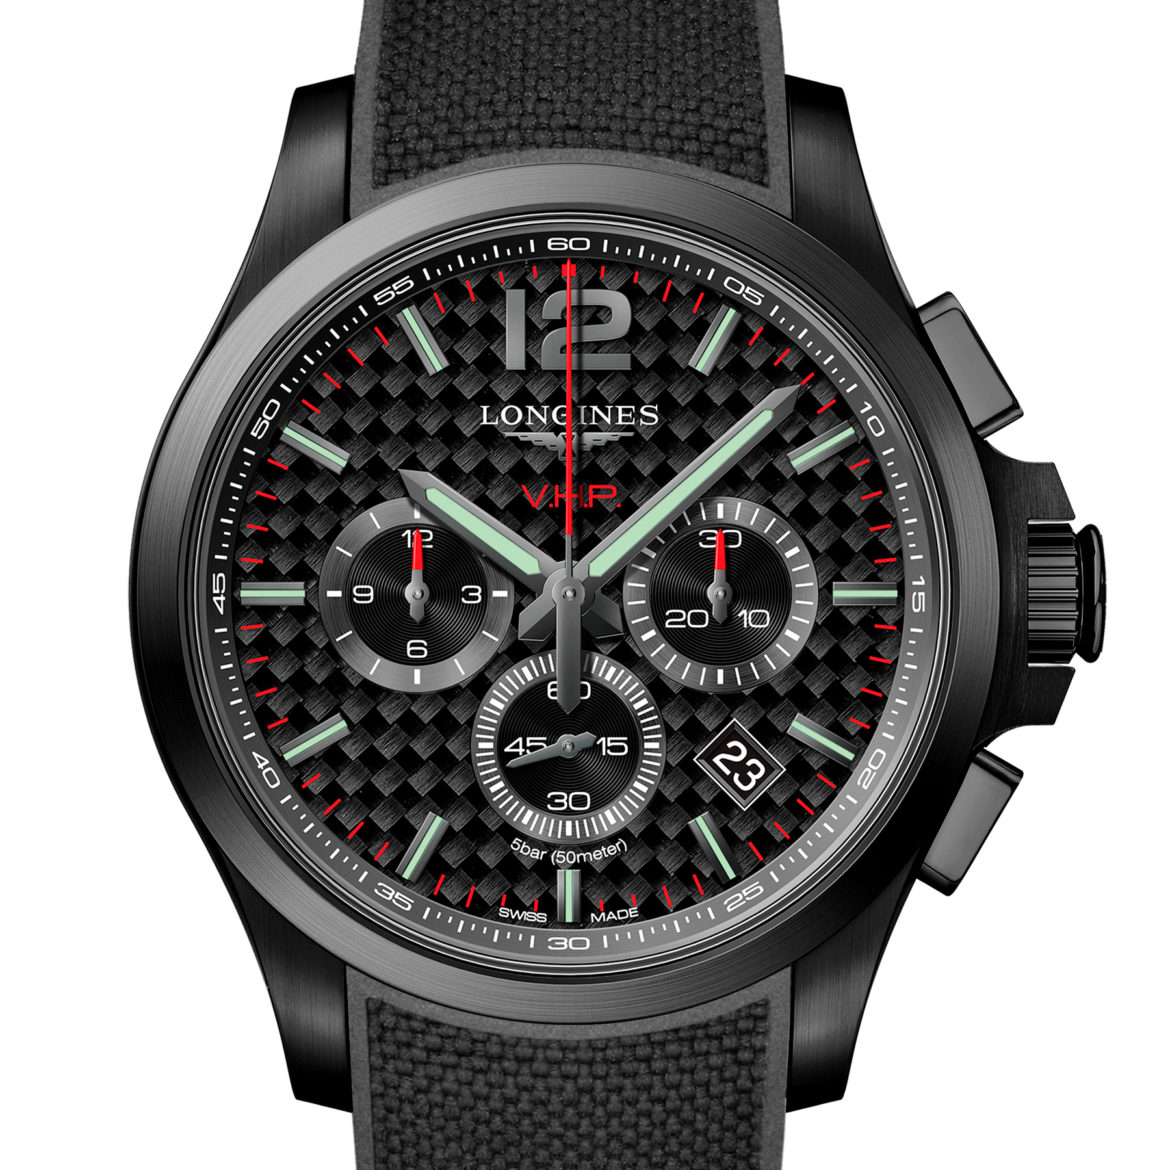 LONGINES</br/>Conquest VHP</br/>L37272669